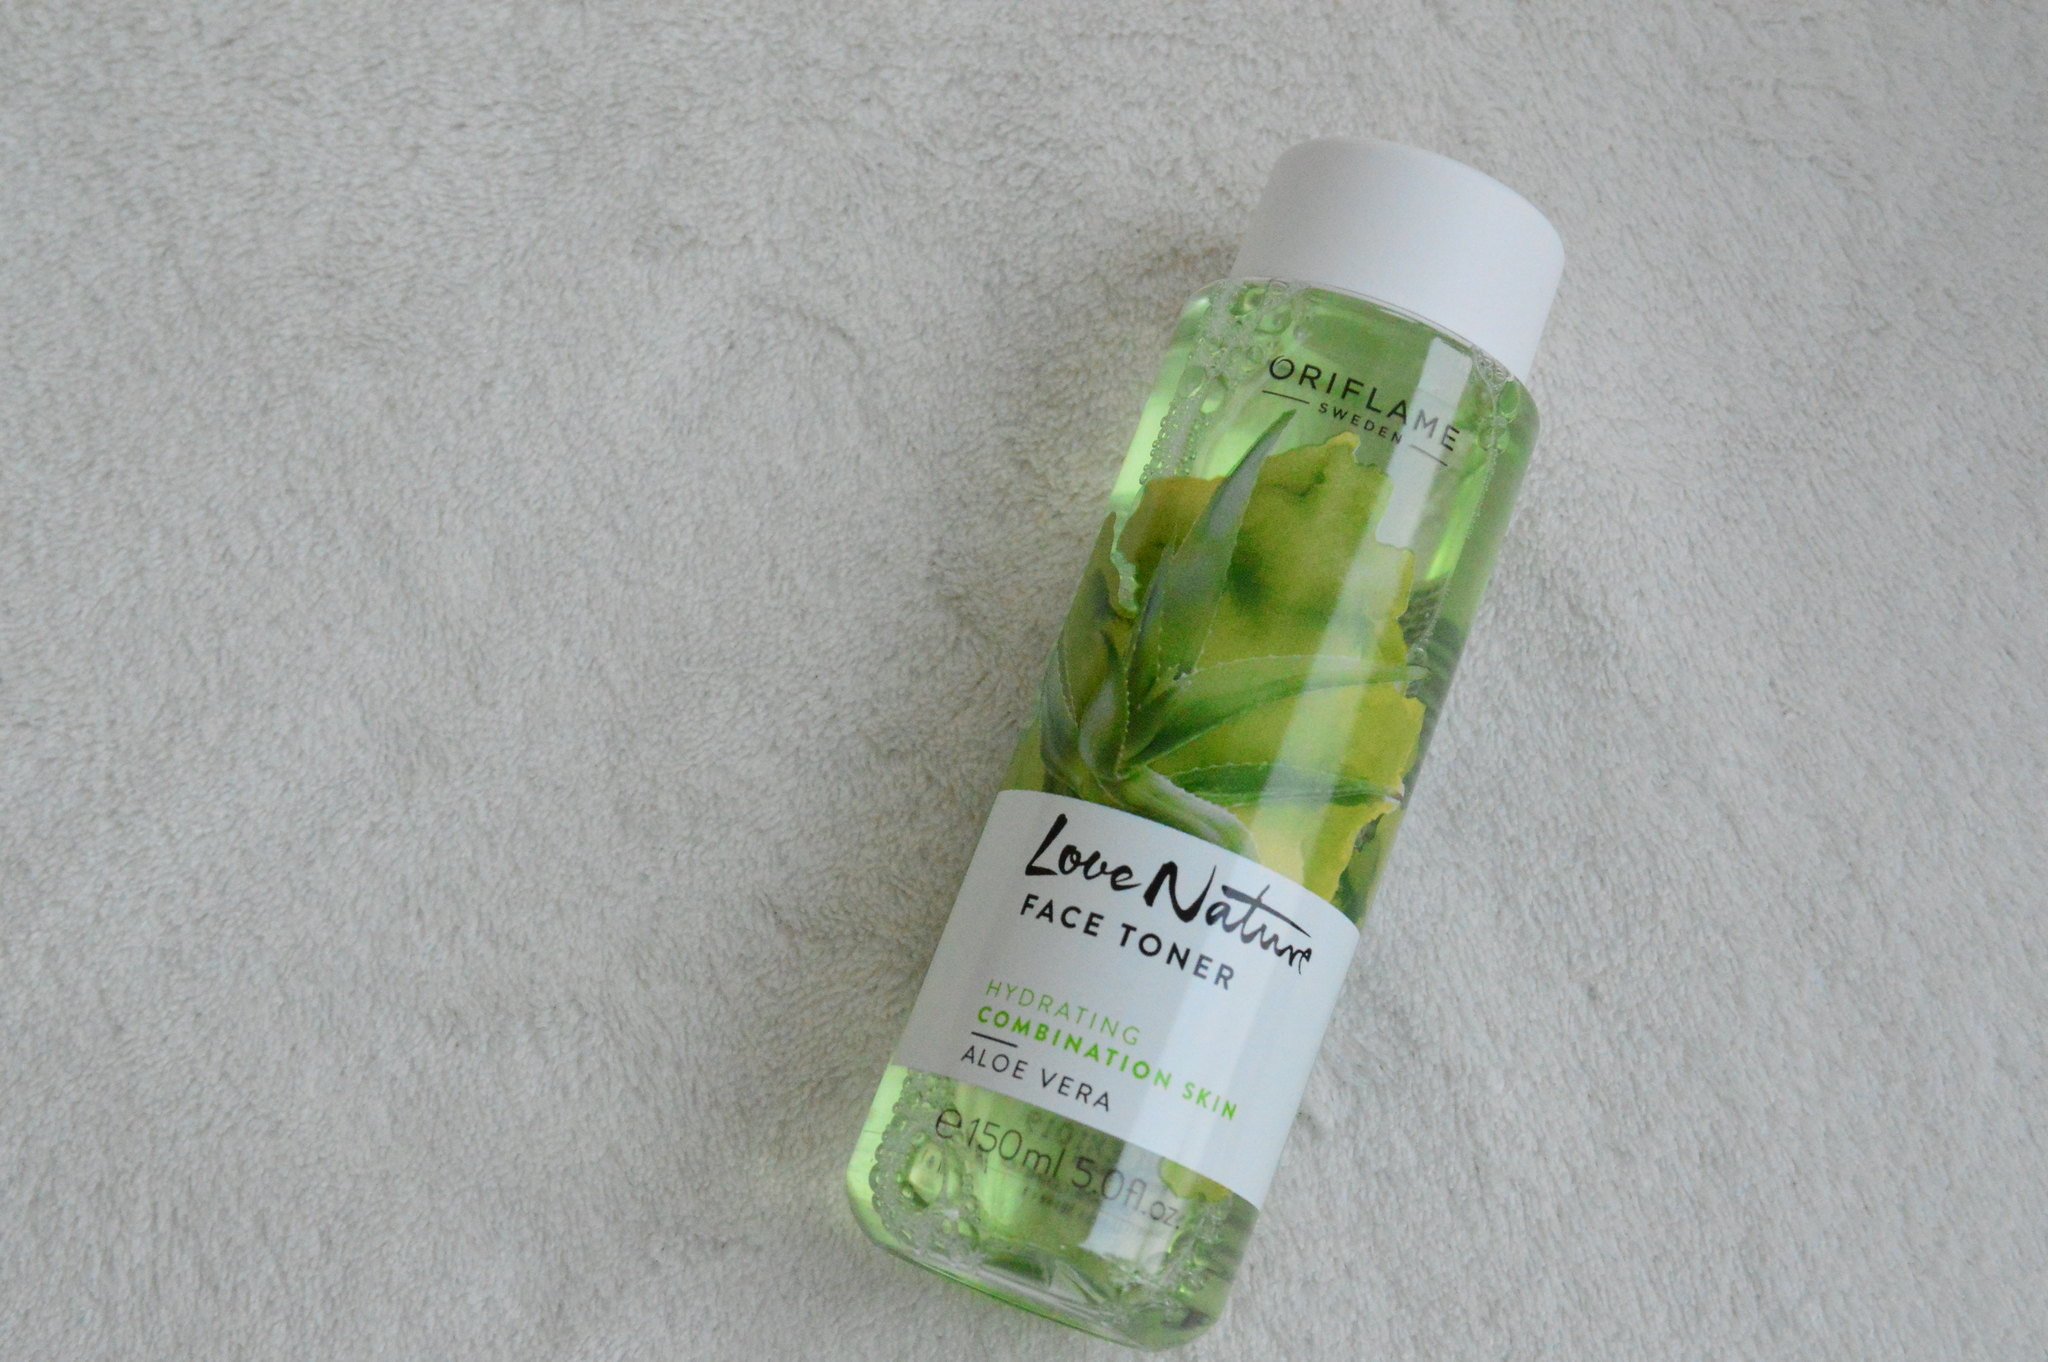 ORIFLAME LOVE NATURE ALOE VERA FACE TONER